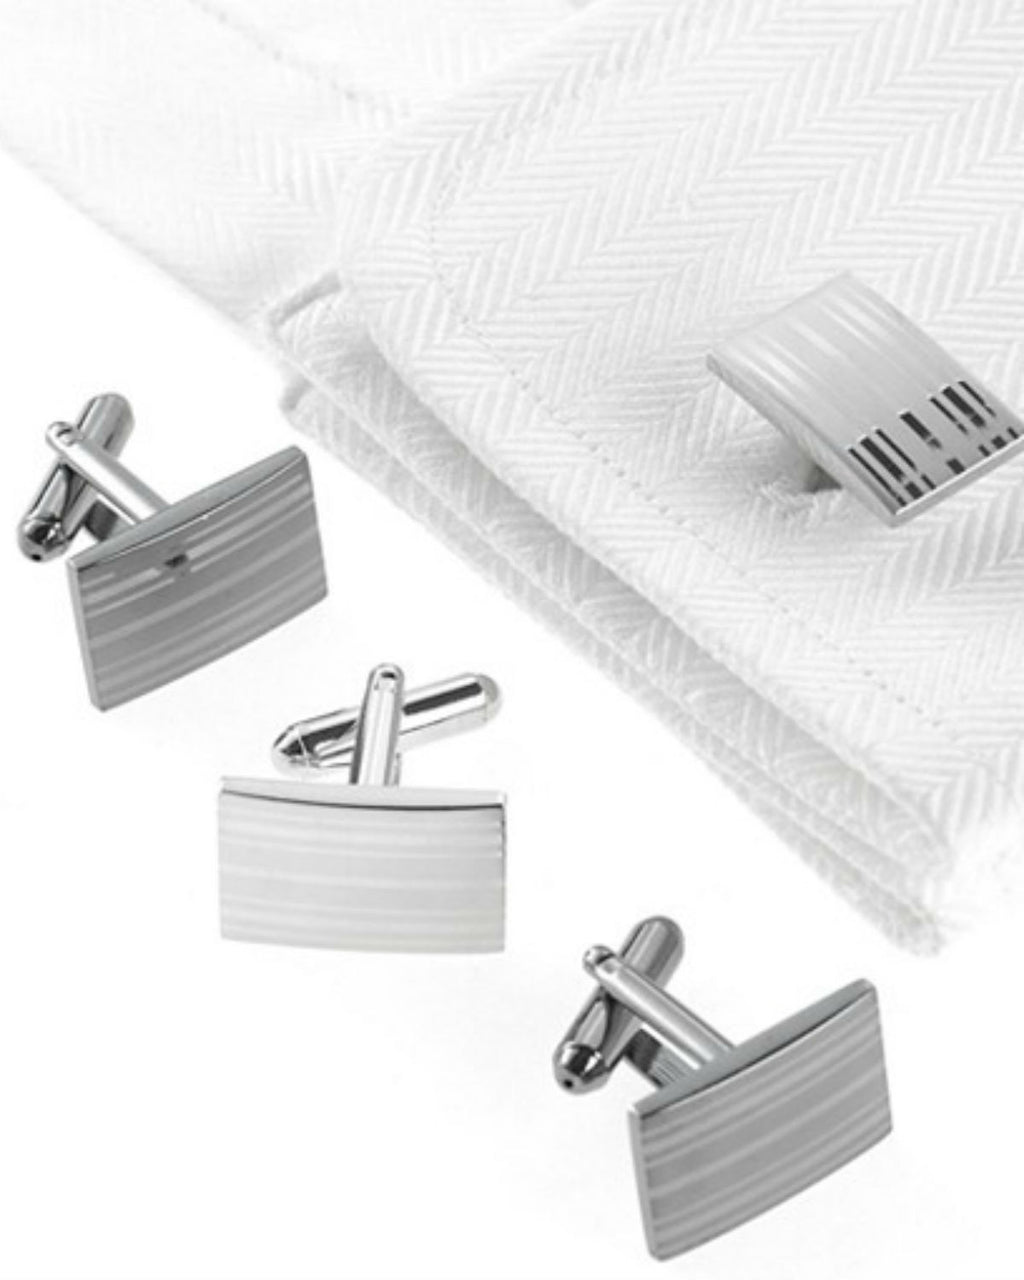 Geoffrey Beene Cufflinks, Laser Stripes Boxed Set-GEOFFREY BEENE-Fashionbarn shop